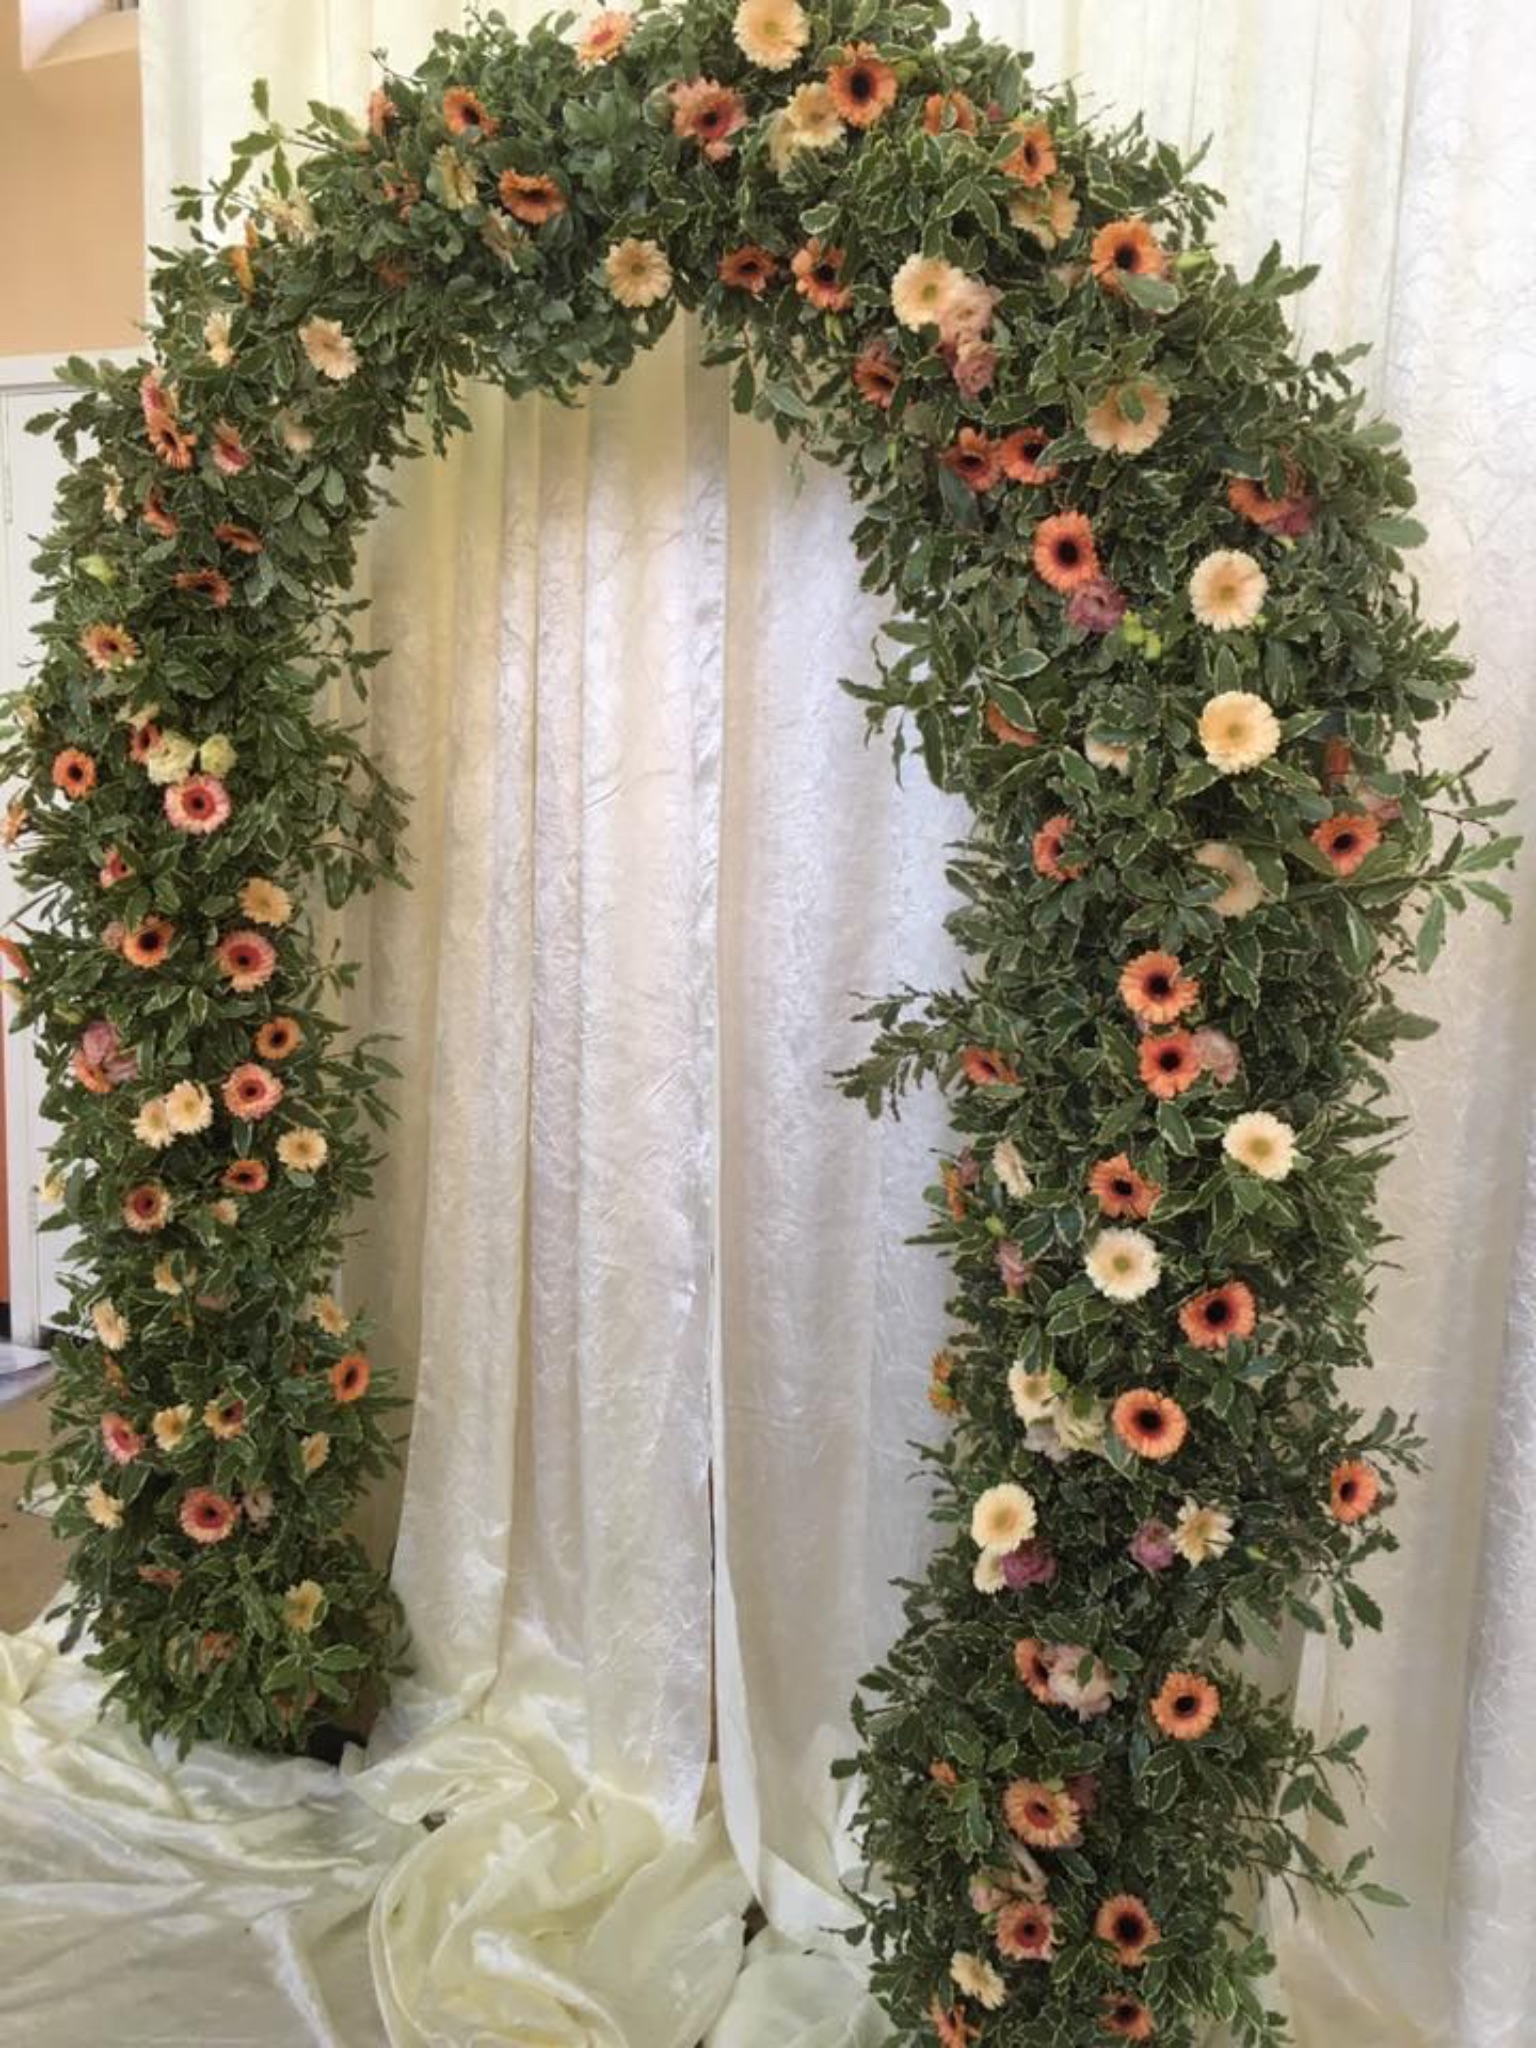 Floral Arch with Greenery 4